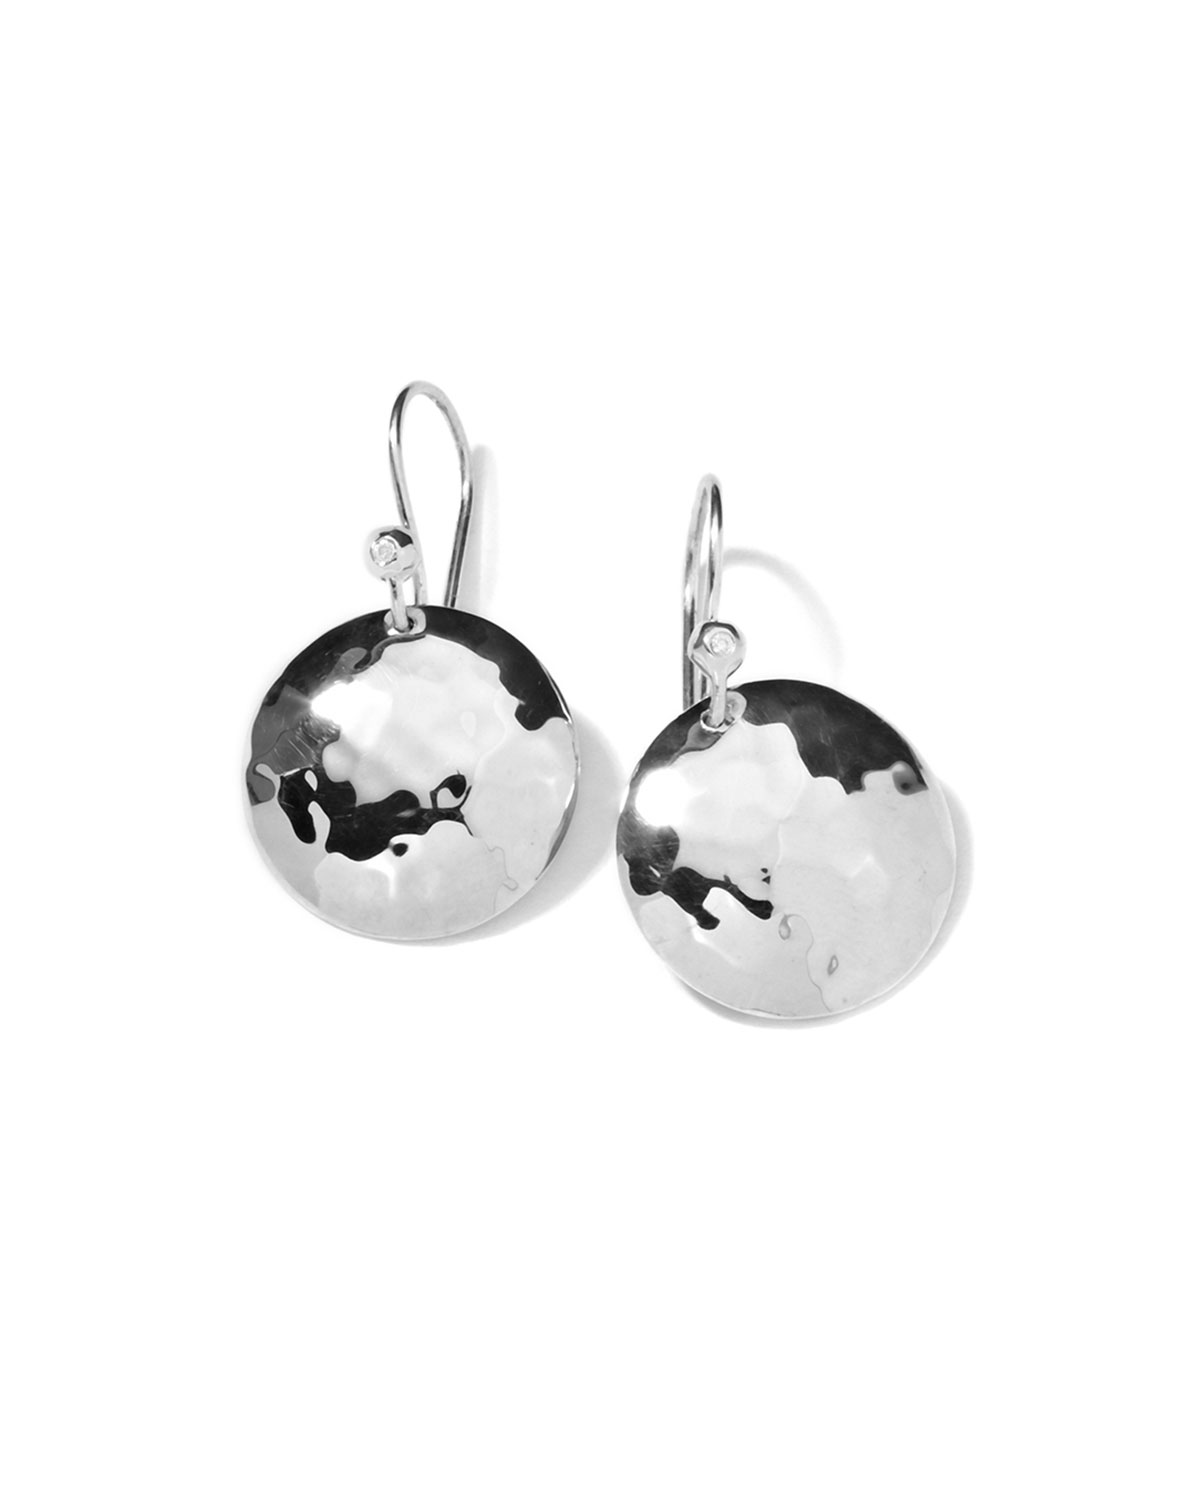 Diamond & Sterling Silver Earrings   Ippolita   Silver